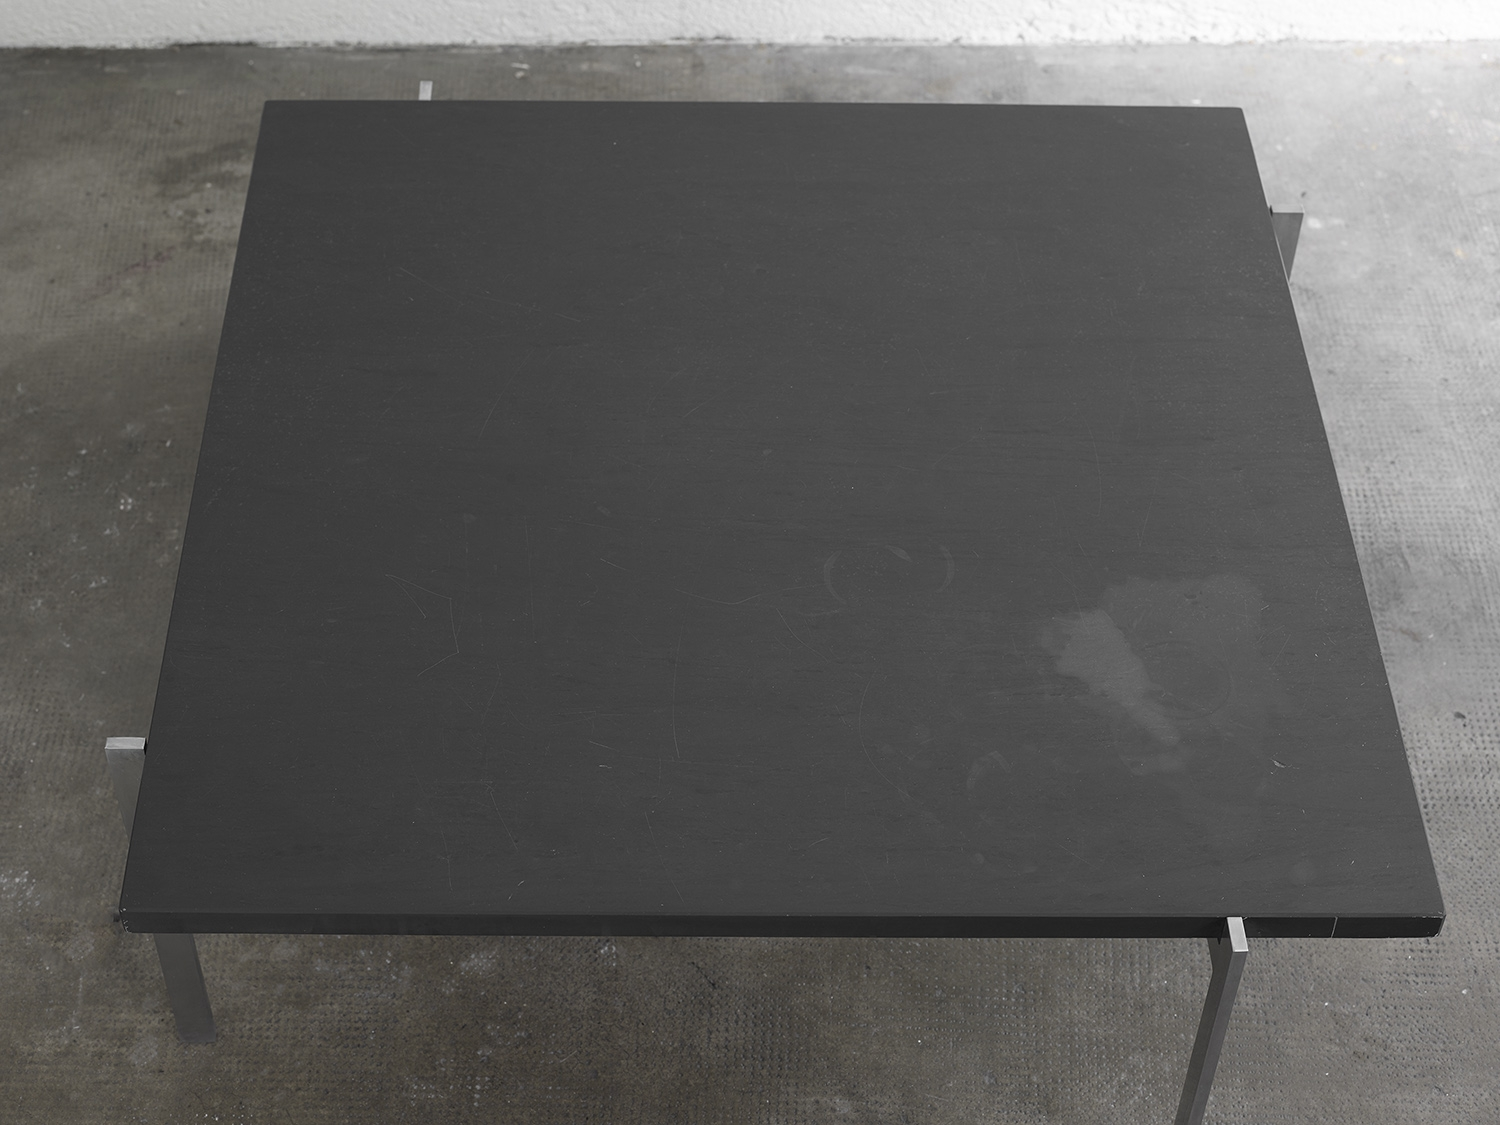 pk61-slate-coffee-table-by-poul-kjaerholm-image-04